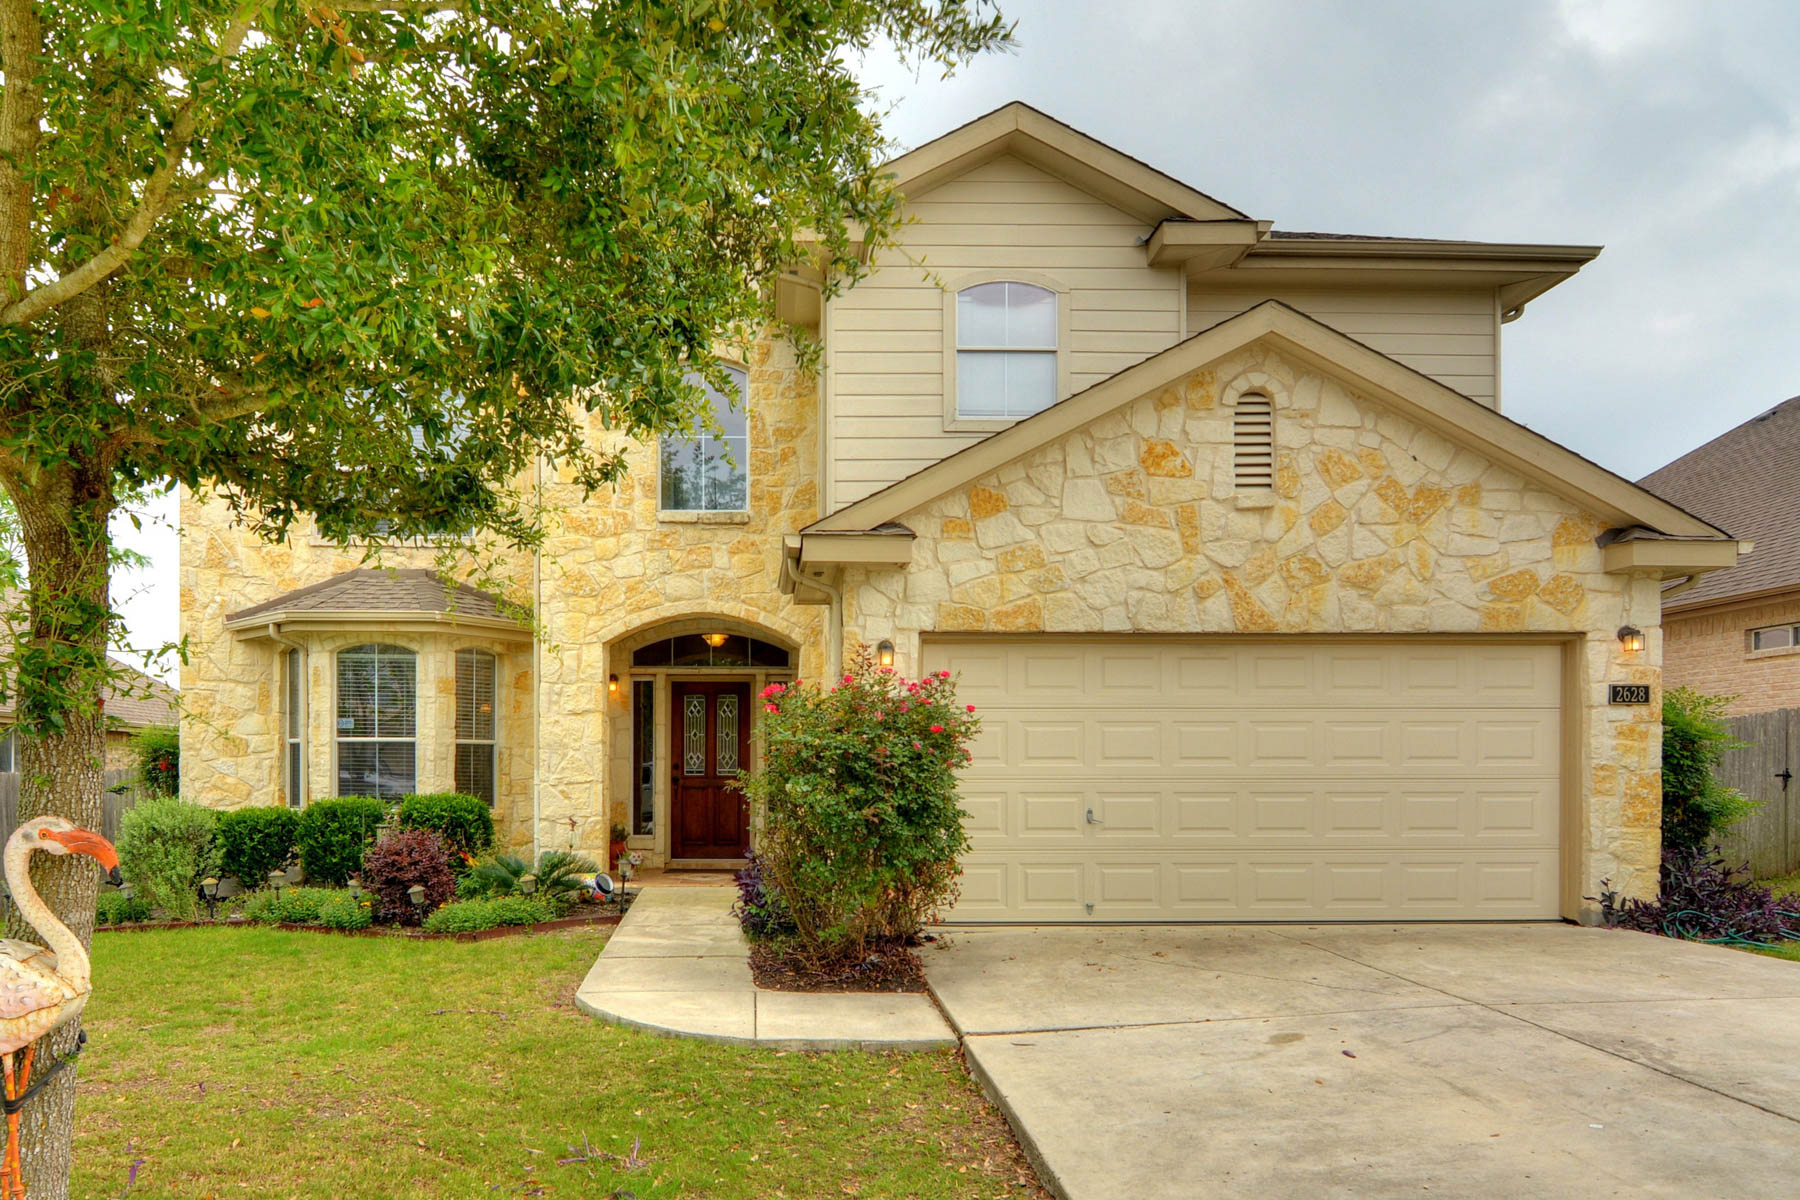 Other Residential for Rent at Great Neighborhood & School District 2628 Riva Ridge Cir Schertz, Texas 78108 United States